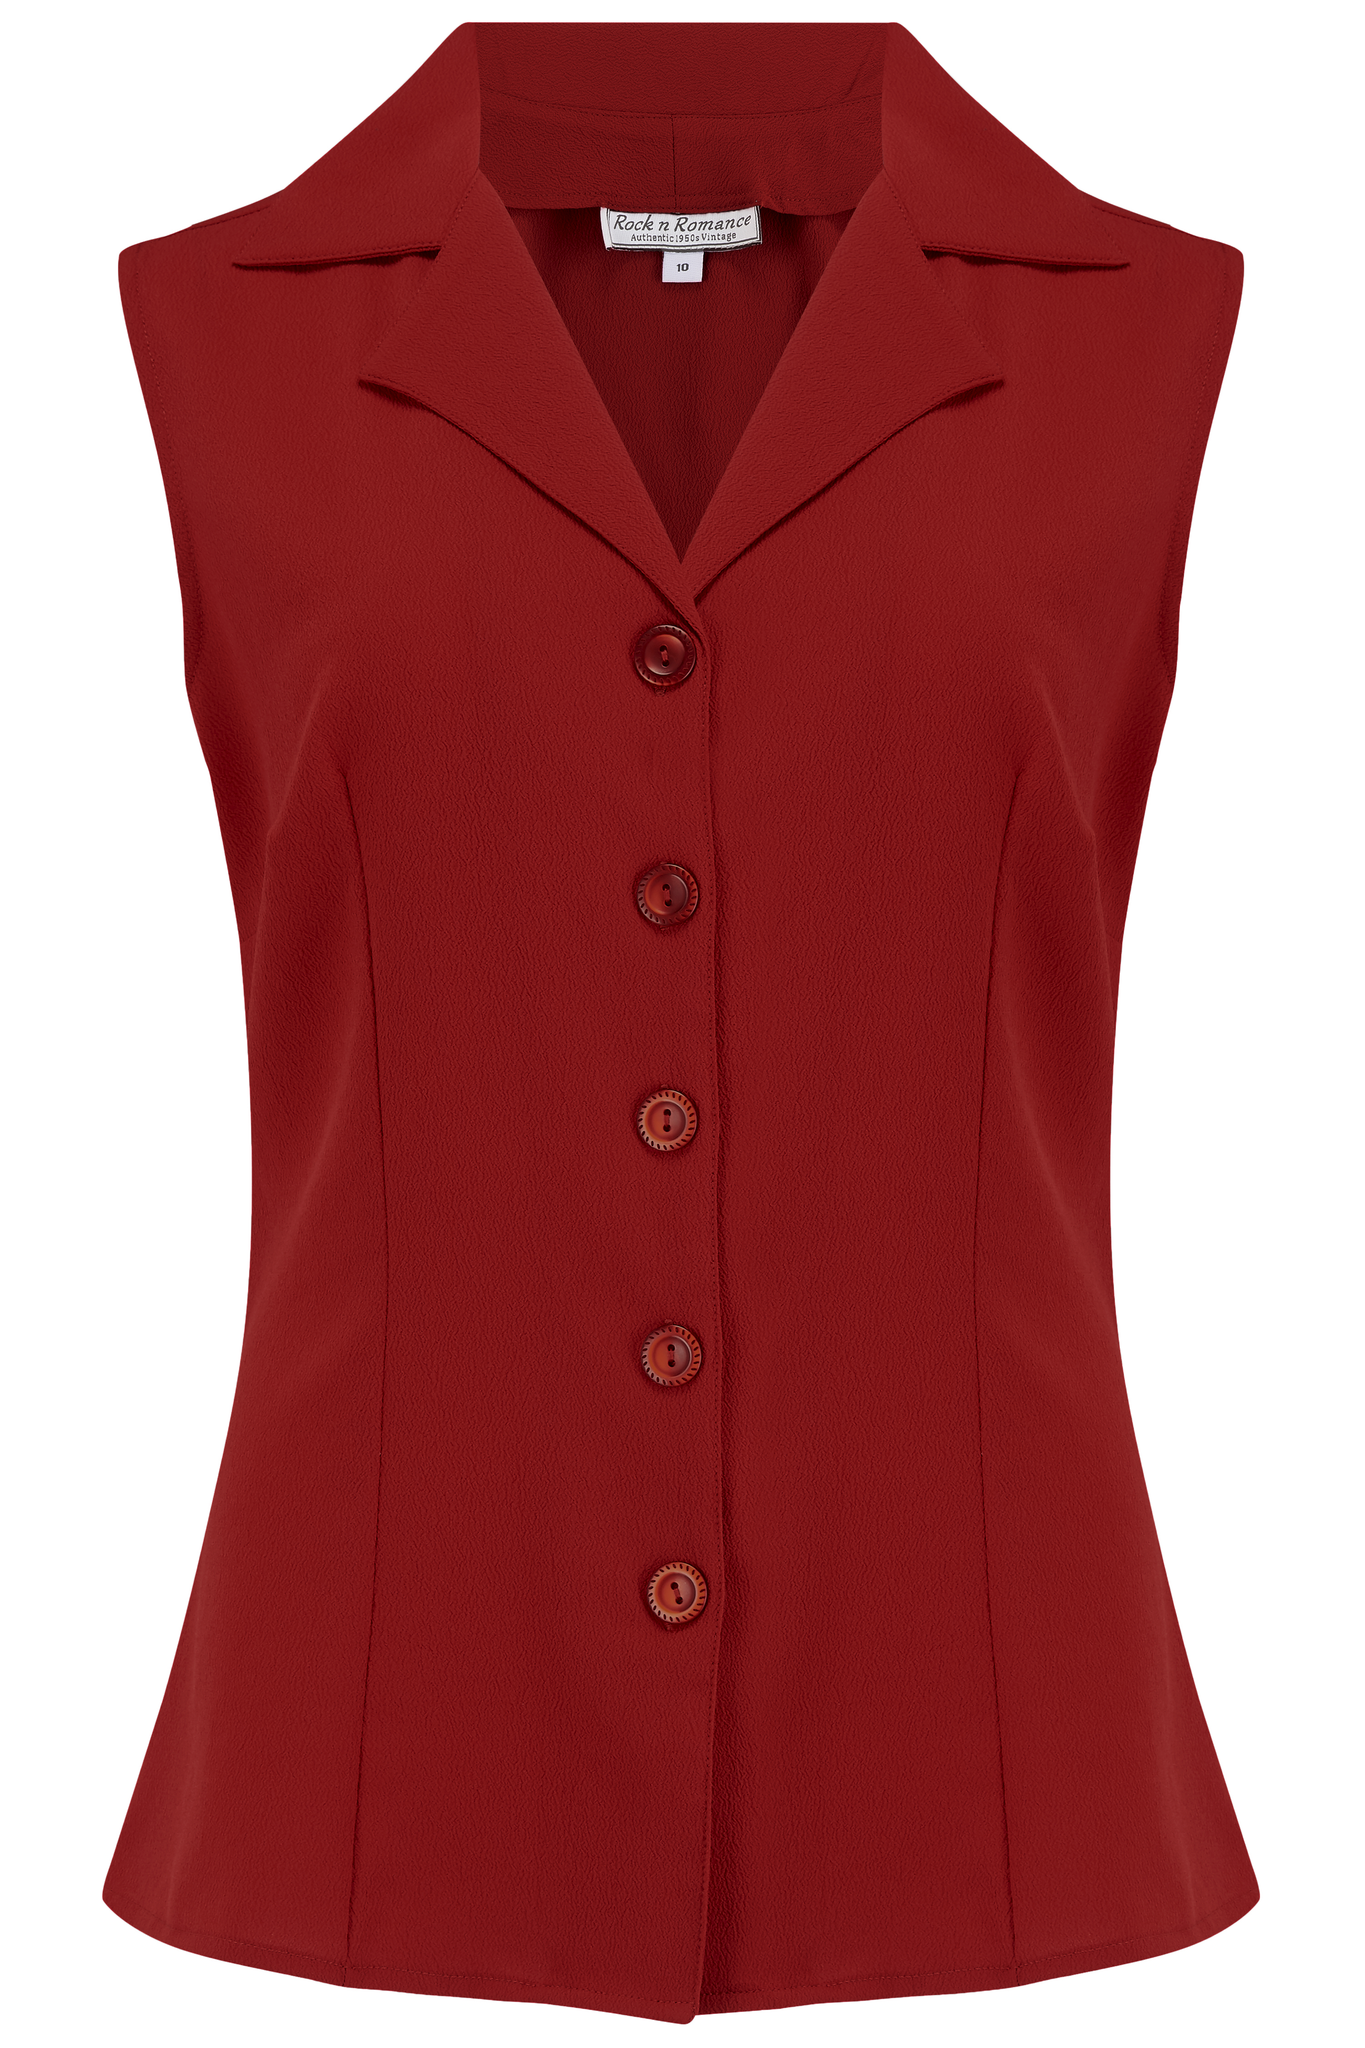 "Rock n Romance ""Gladys"" Sleeveless Summer Blouse in Solid Wine, Classic Vintage 1950s Inspired Style - RocknRomance Clothing"